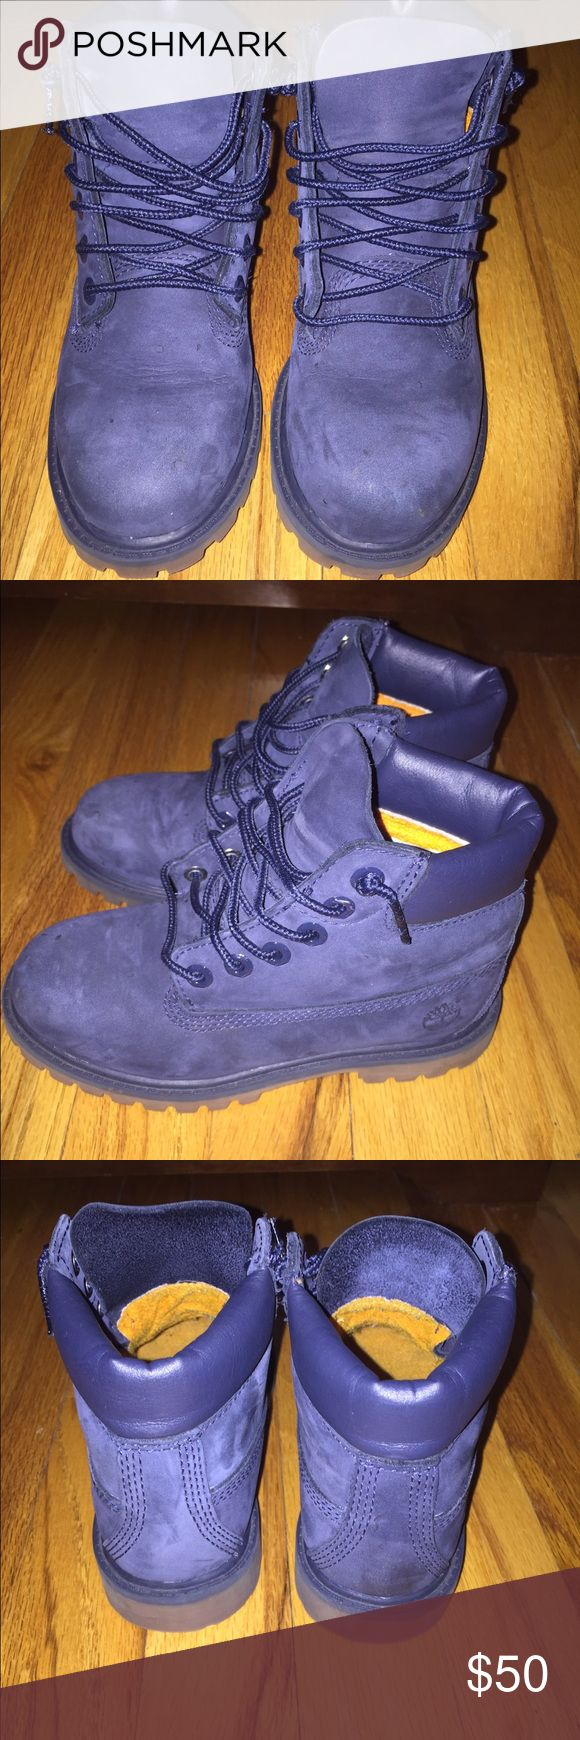 "Timberland Classic 6"" Boot EUC Timberland Classic 6"" Boot navy blue Timberland Shoes Boots"